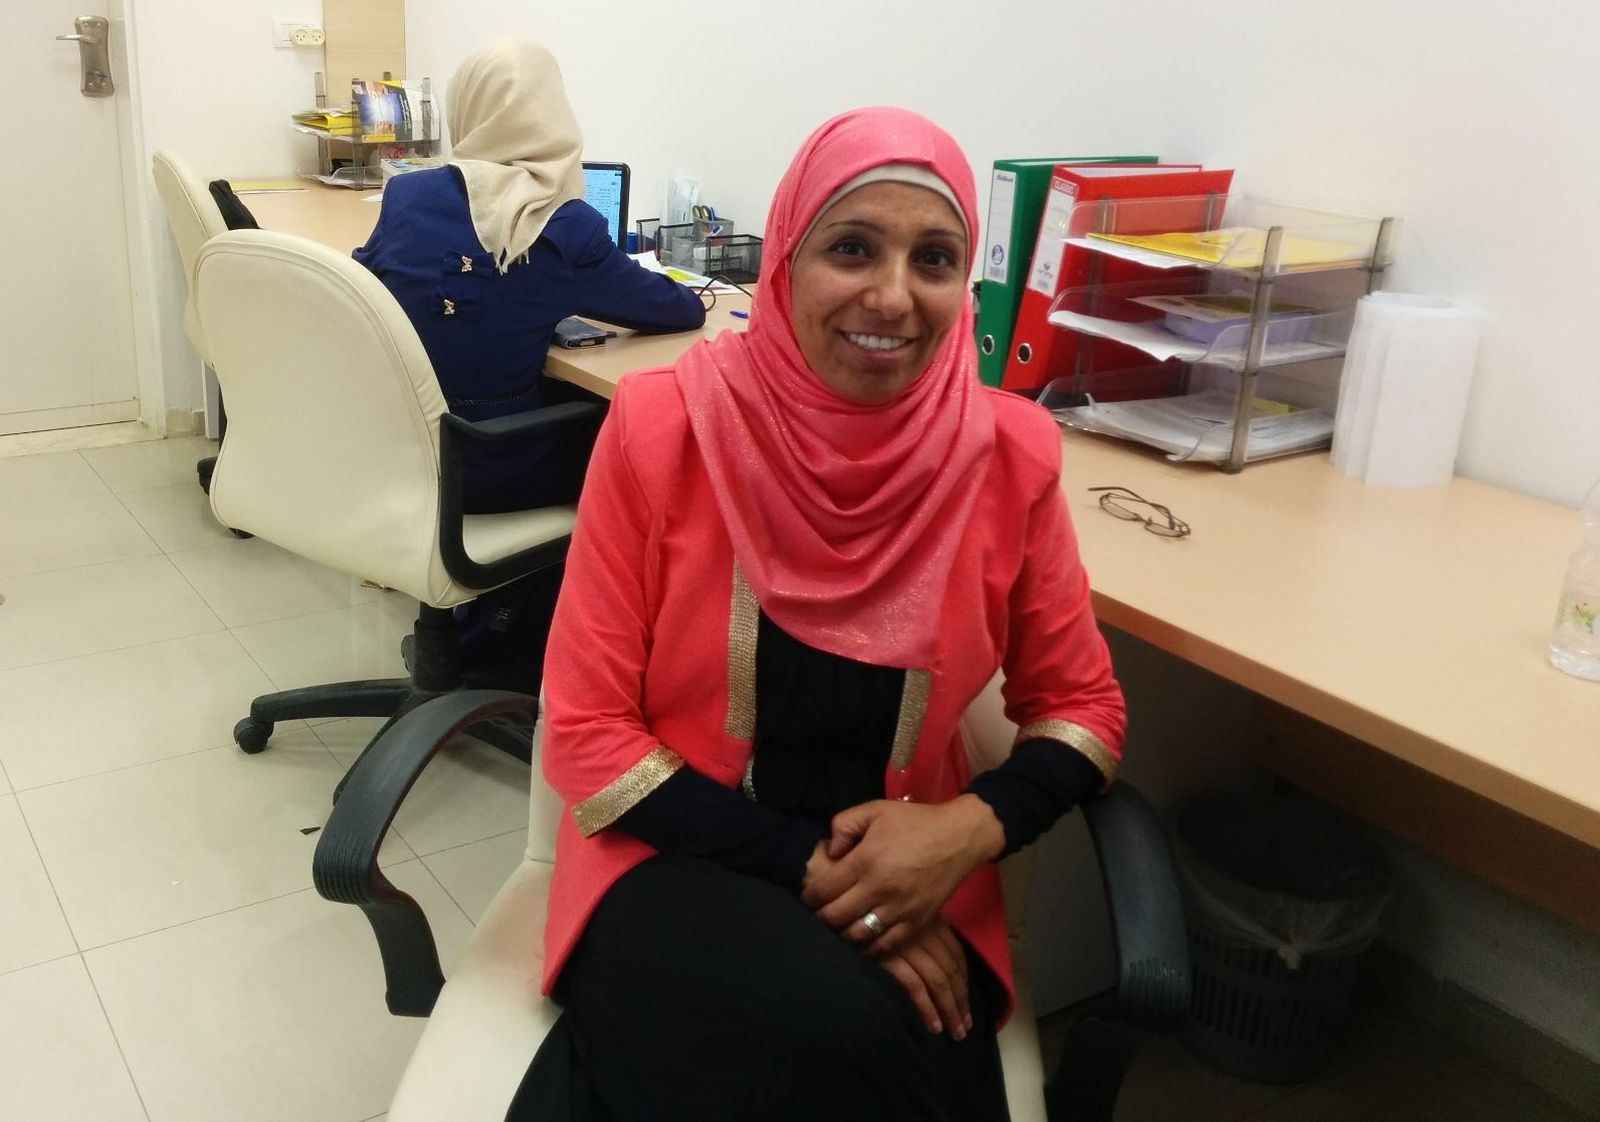 Mariam Abu Hamad, director of the Rayan Employment Center in Segev Shalom. Photo by Abigail Klein Leichman